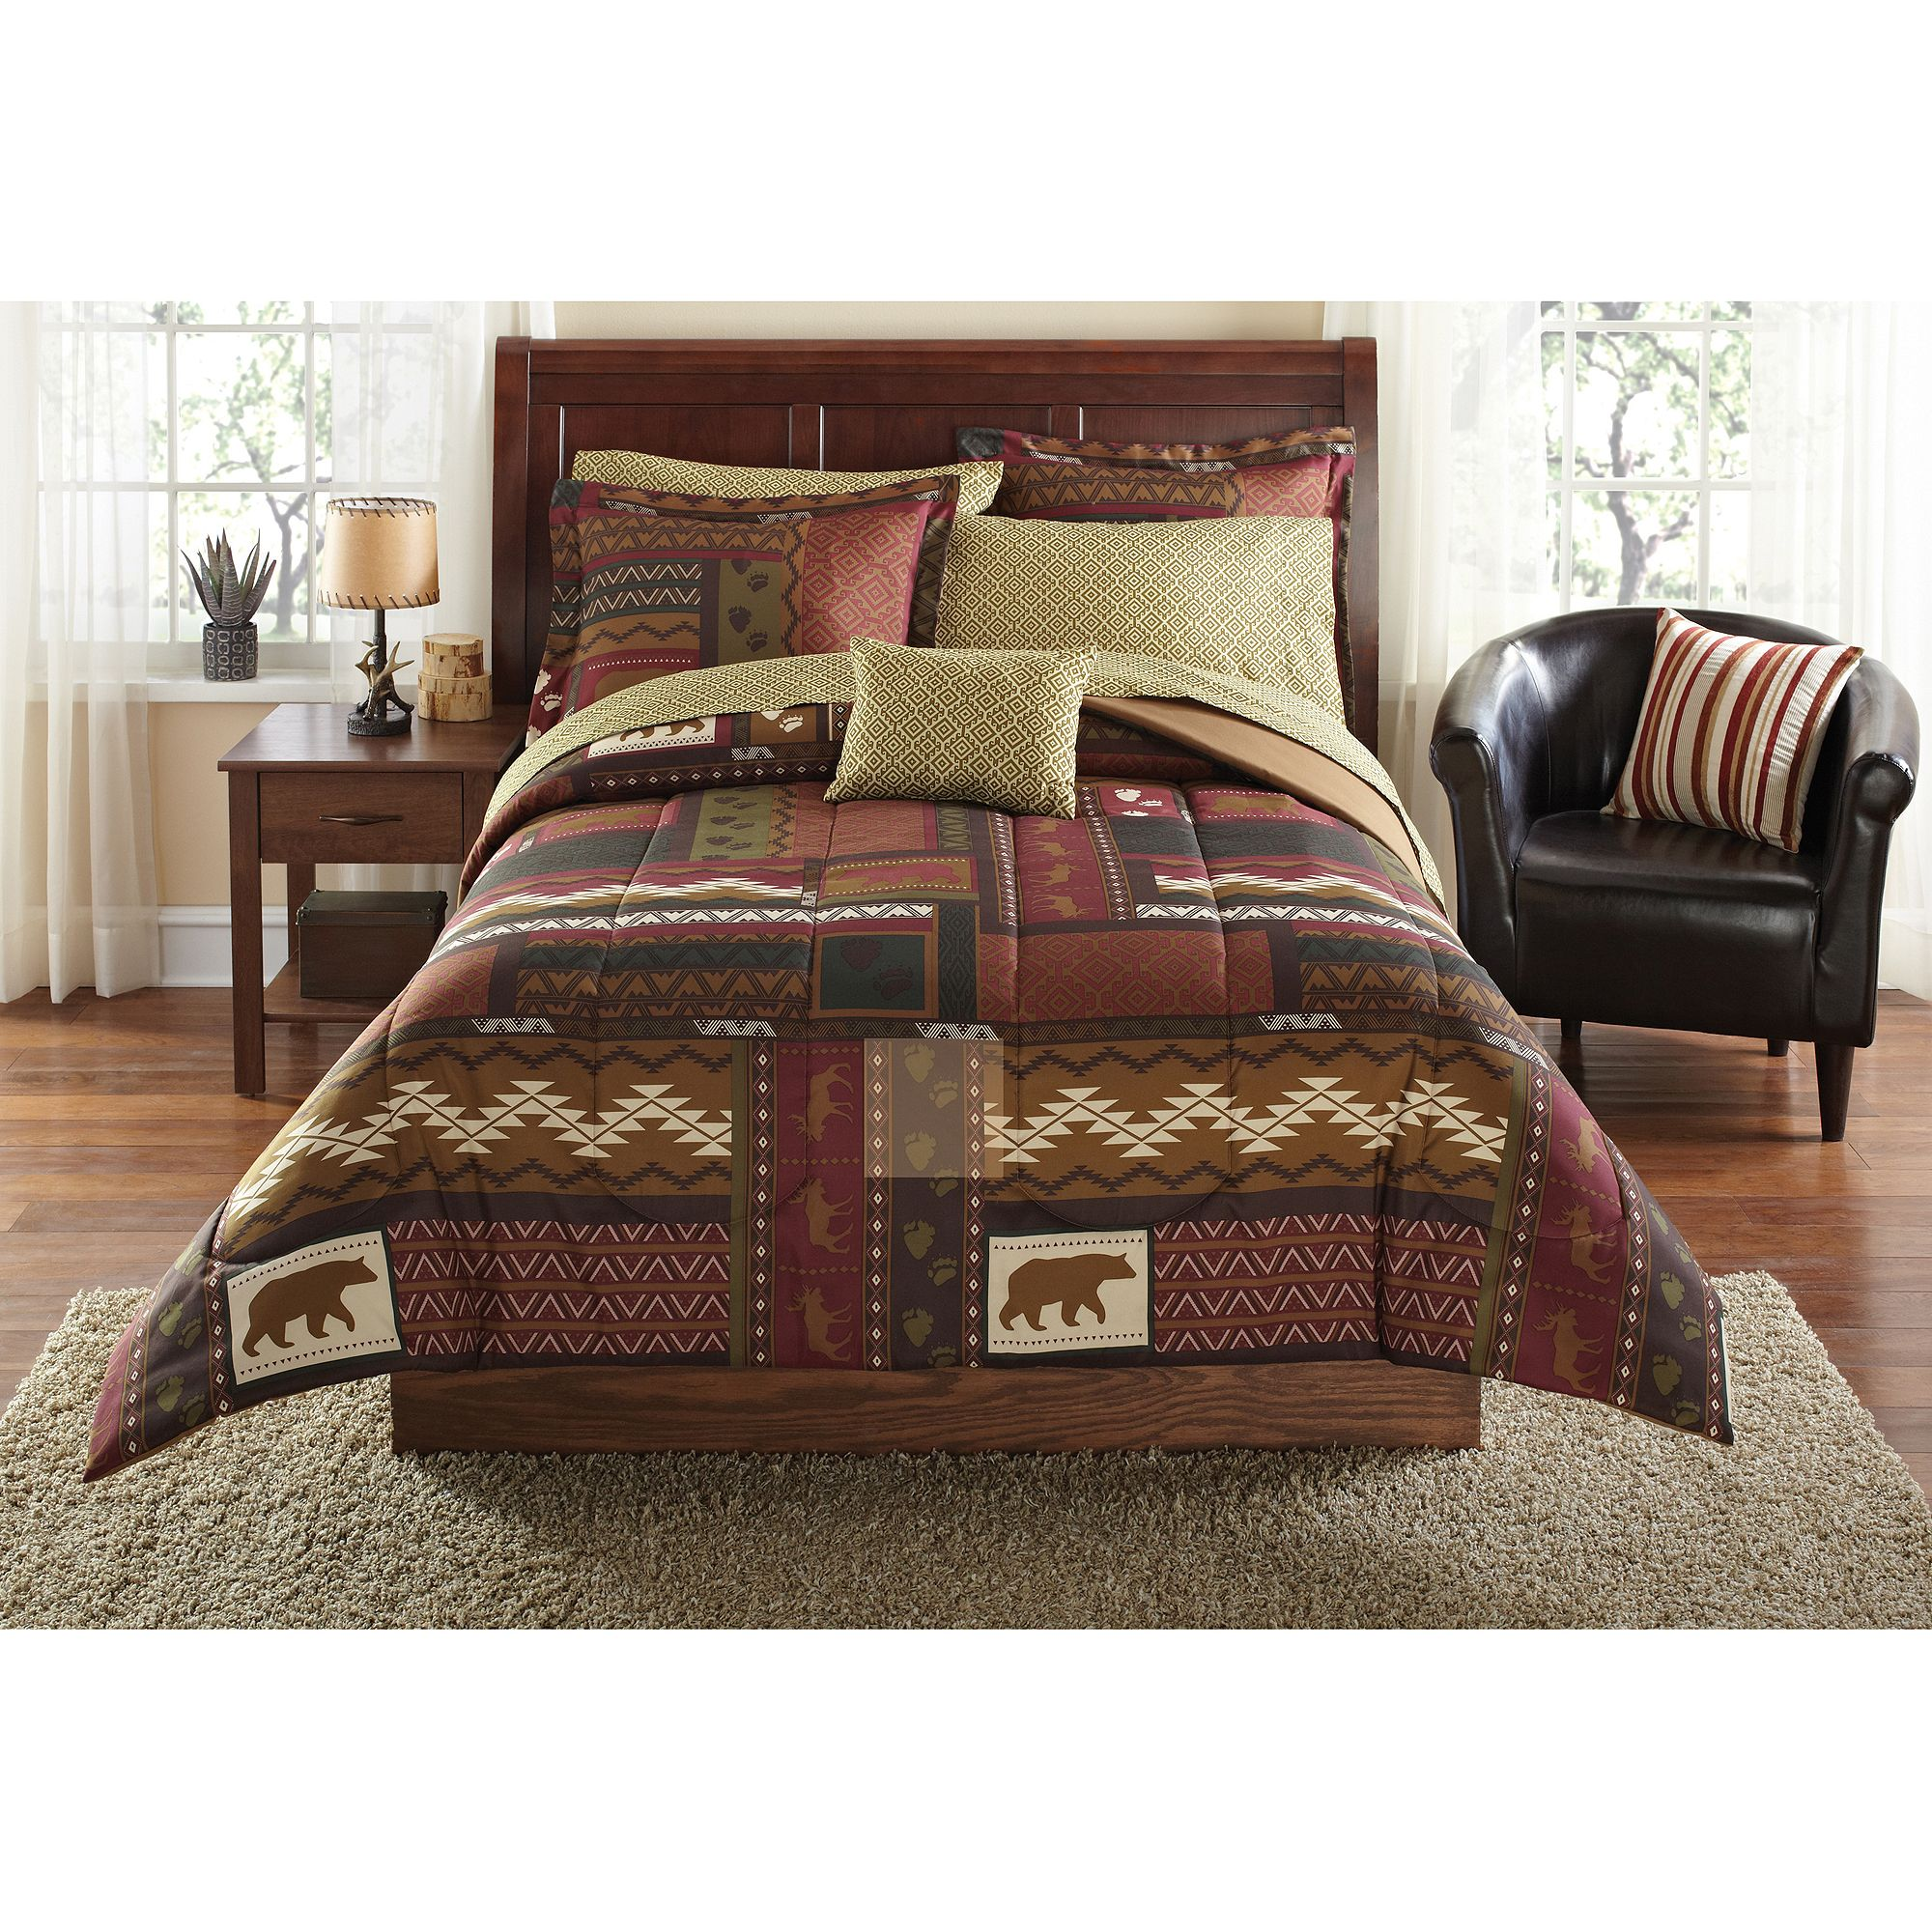 Mainstays Cabin Bed In A Bag Coordinated Bedding Set From Style Setscabin Sets Ho